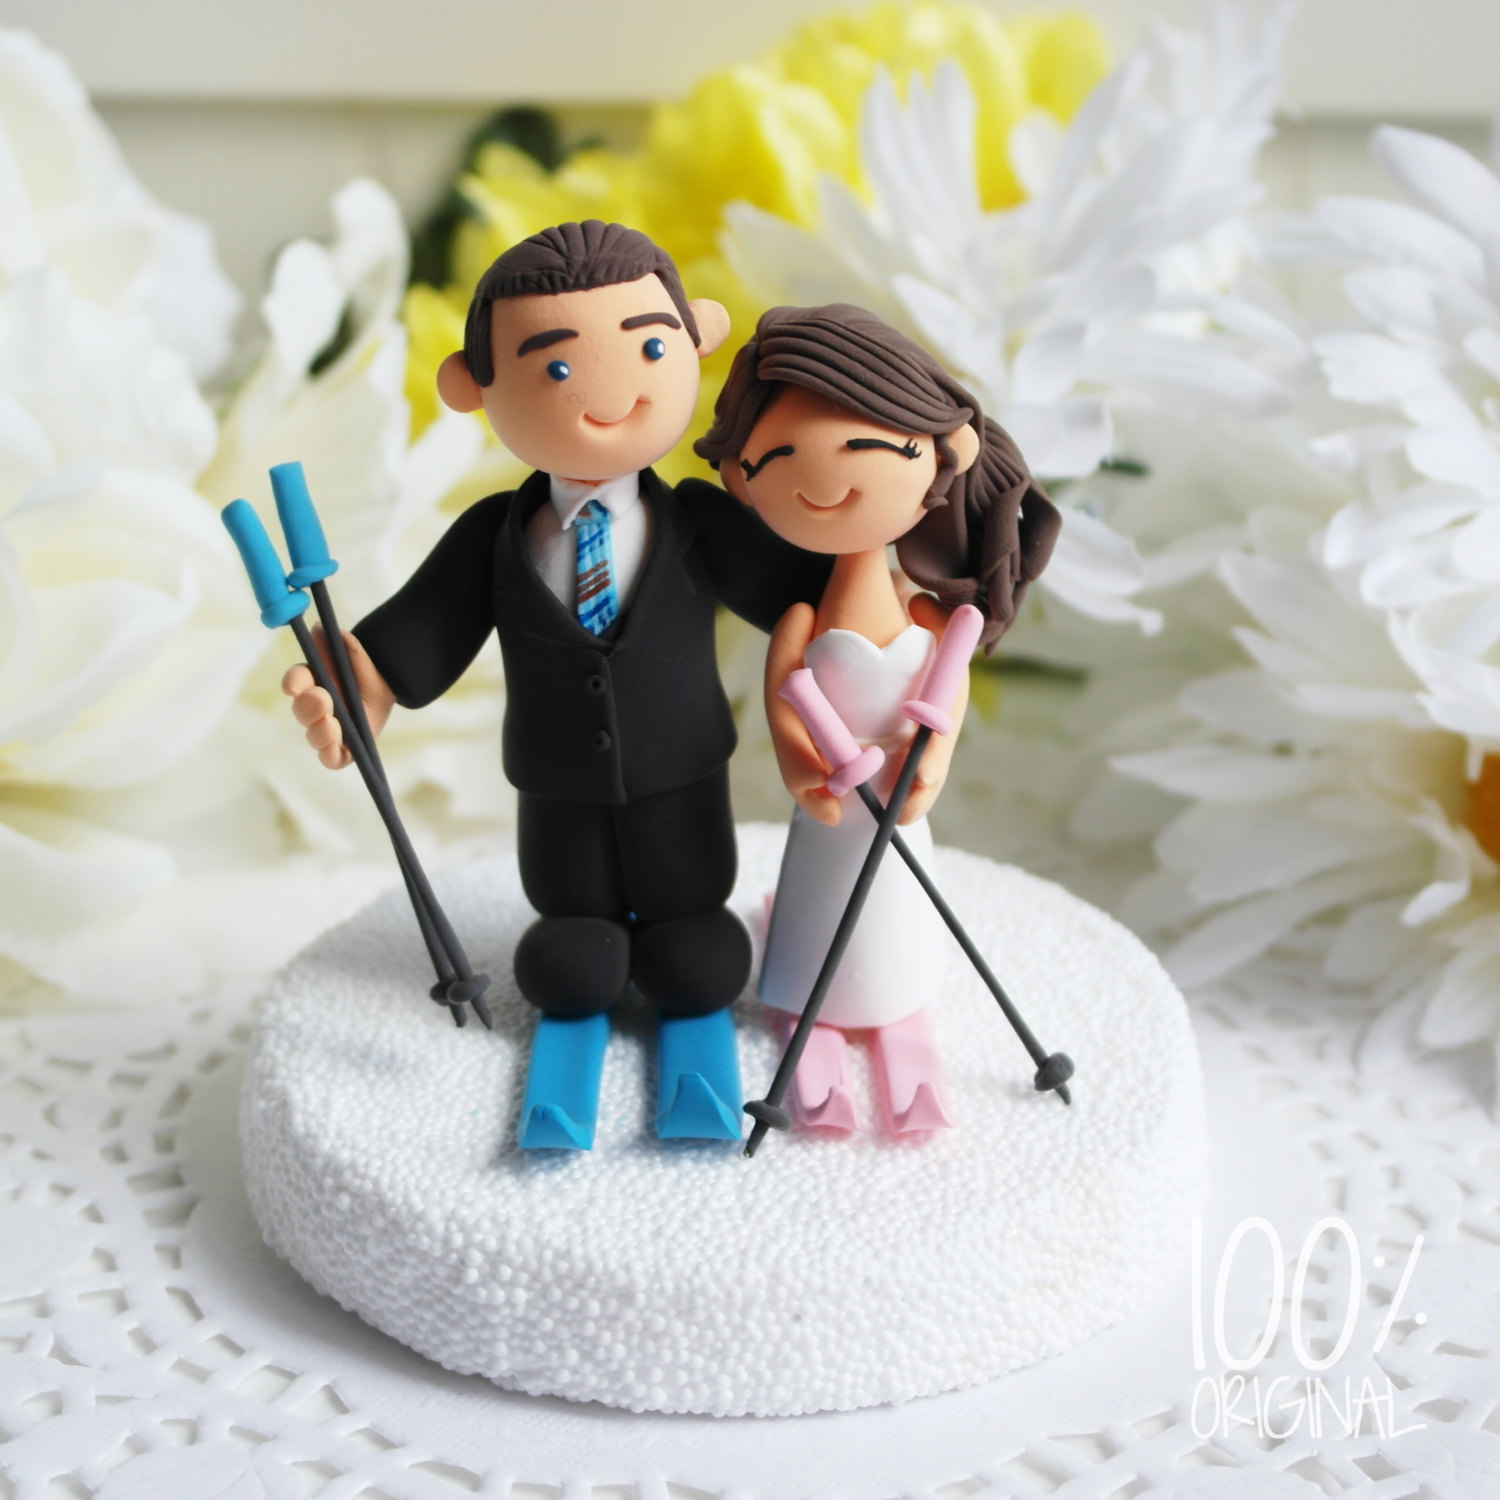 cake topper skiing couple - 9 Adorable Custom Made Cake Toppers via https://emmalinebride.com/decor/custom-made-cake-toppers/